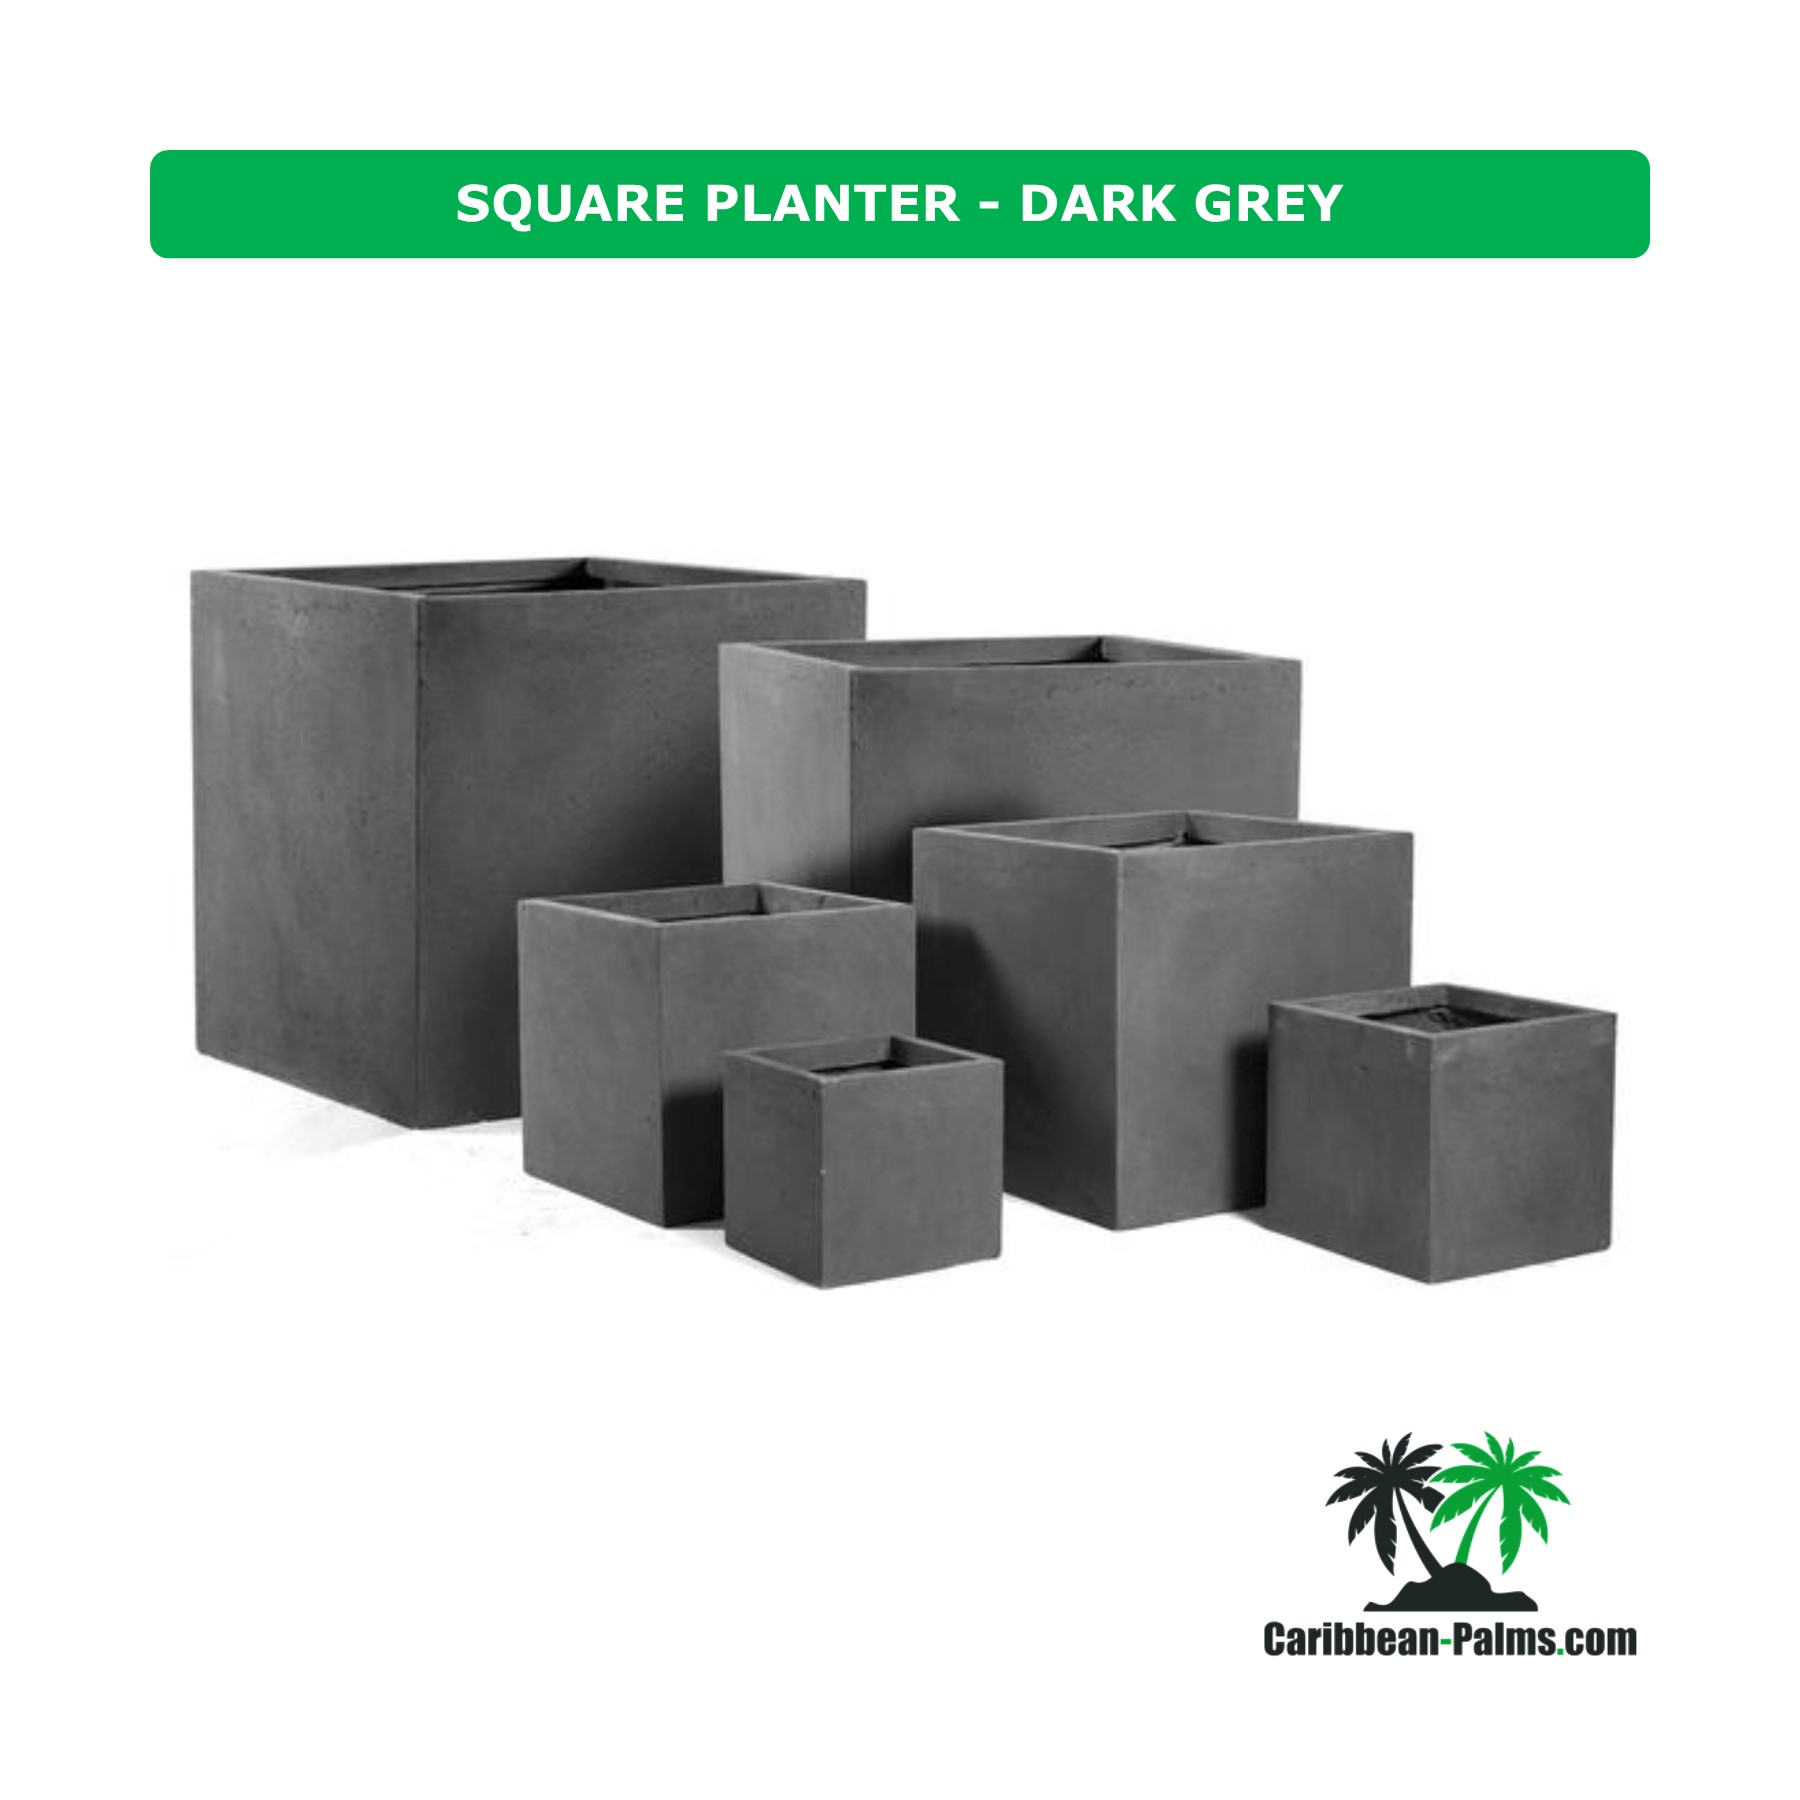 SQUARE PLANTER DARK GREY